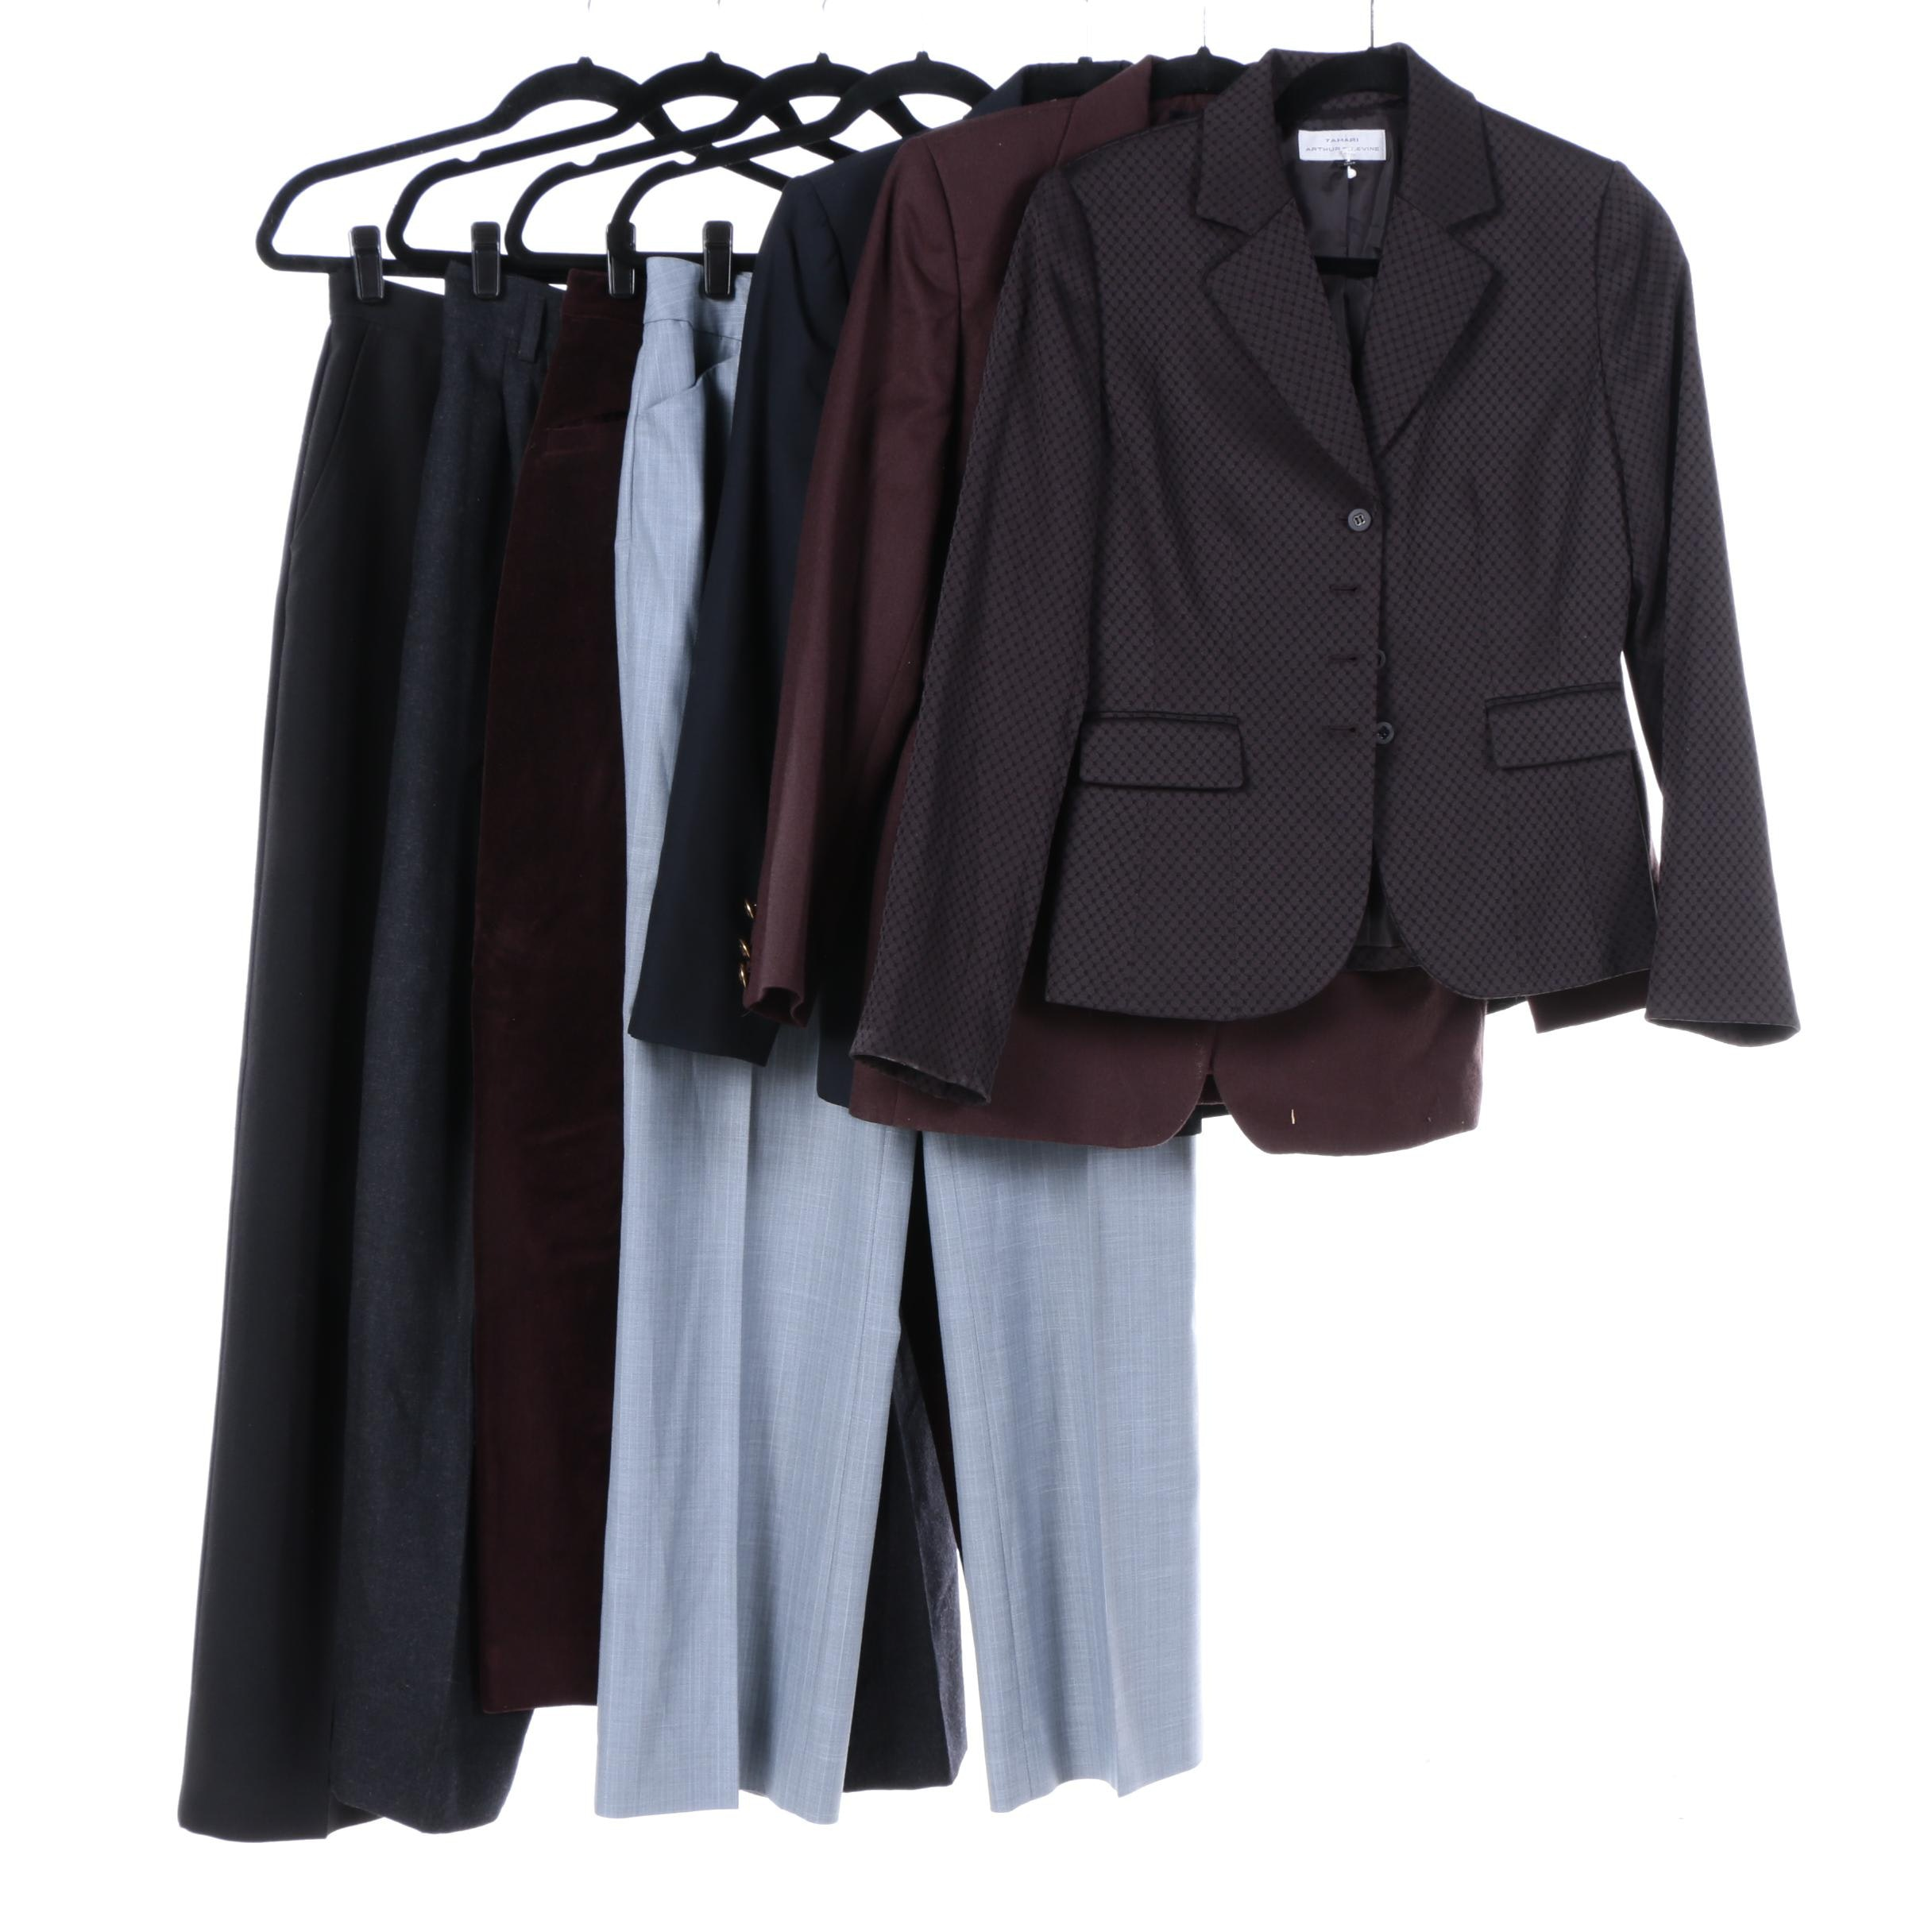 Women's Suit Separates Including Calvin Klein and BCBG Paris